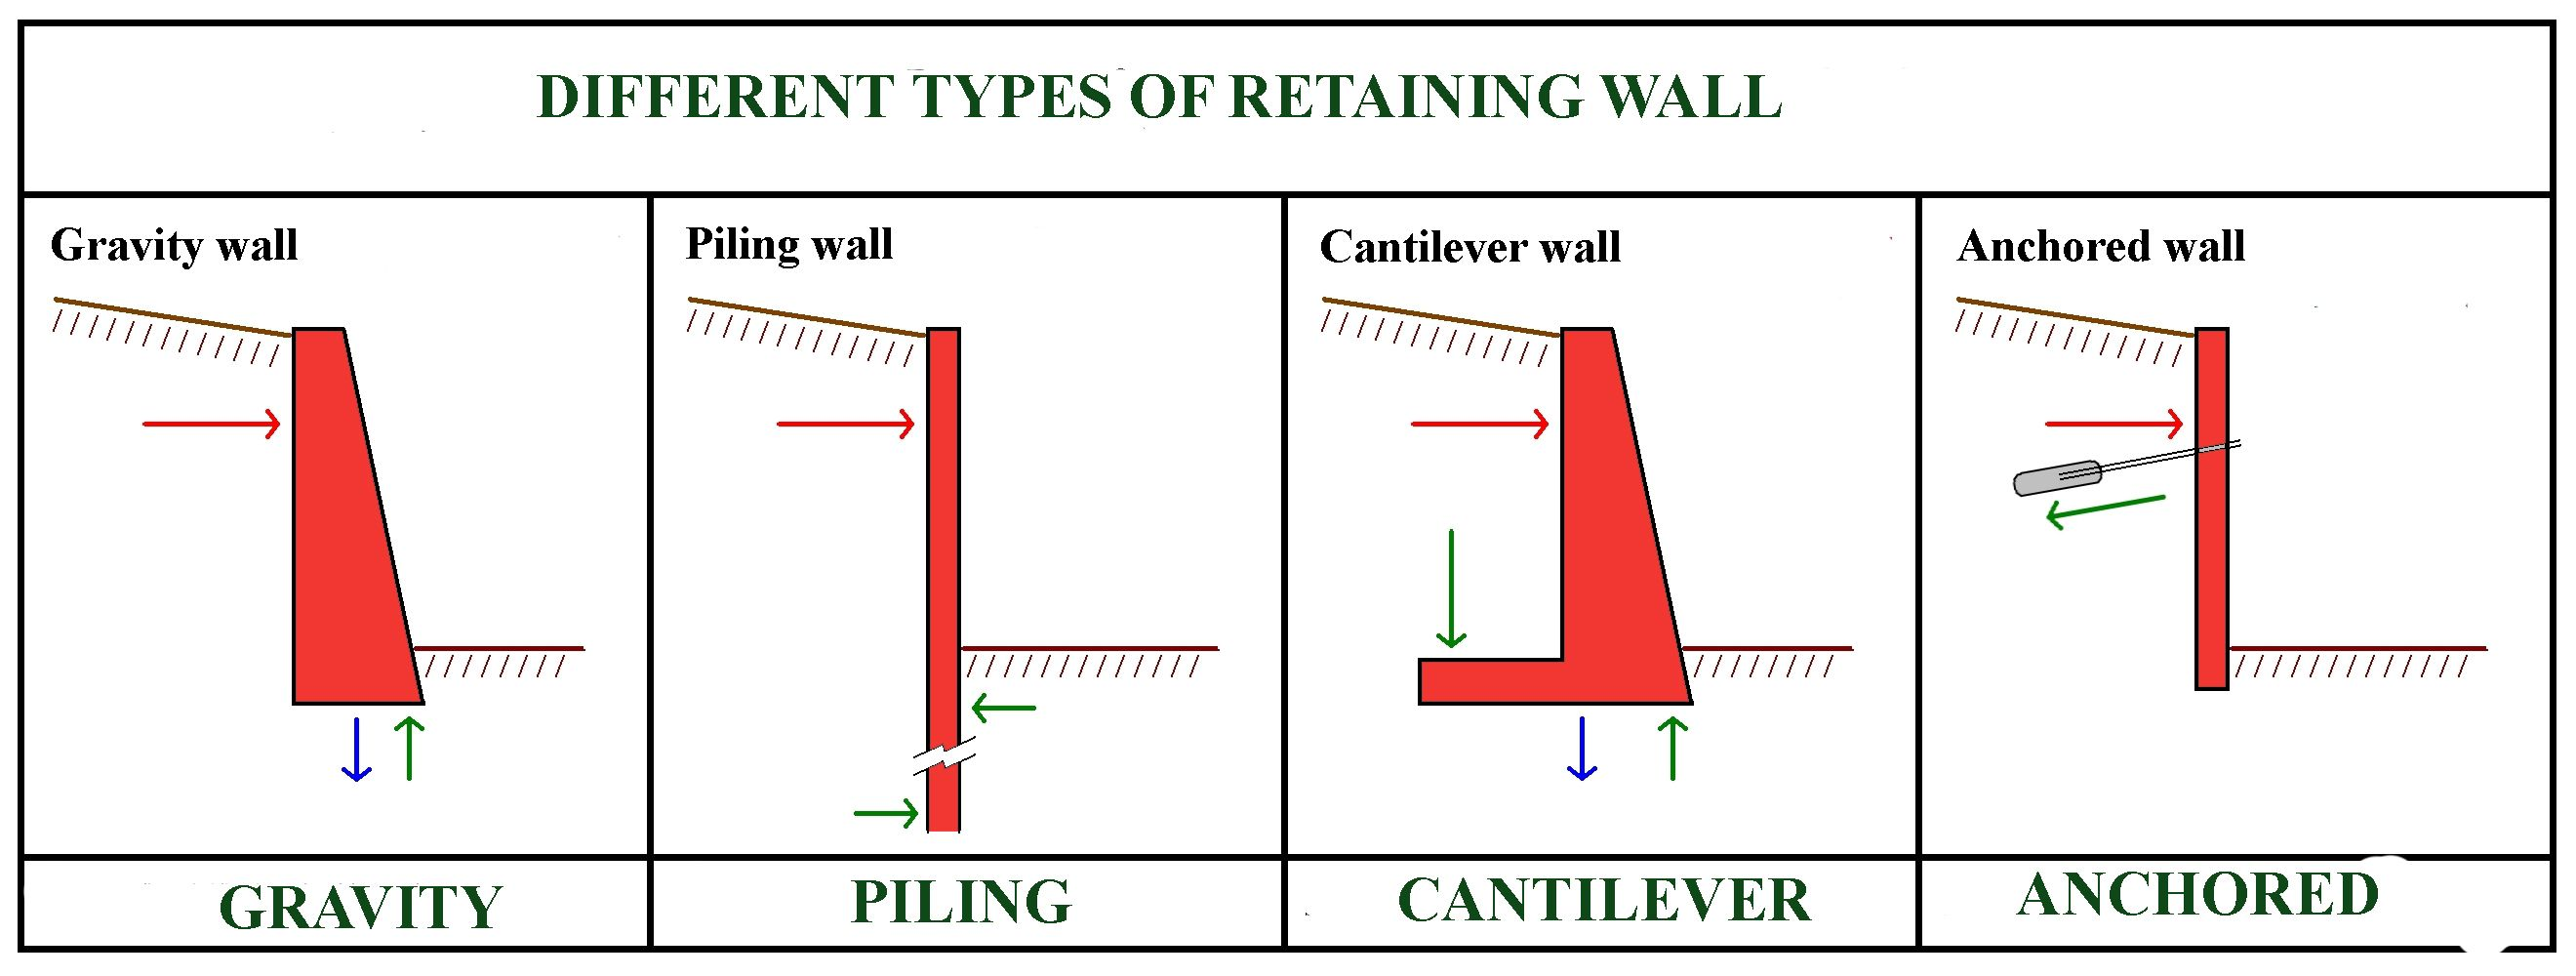 Retaining Wall Definition And Types Of Retaining Walls Gravity